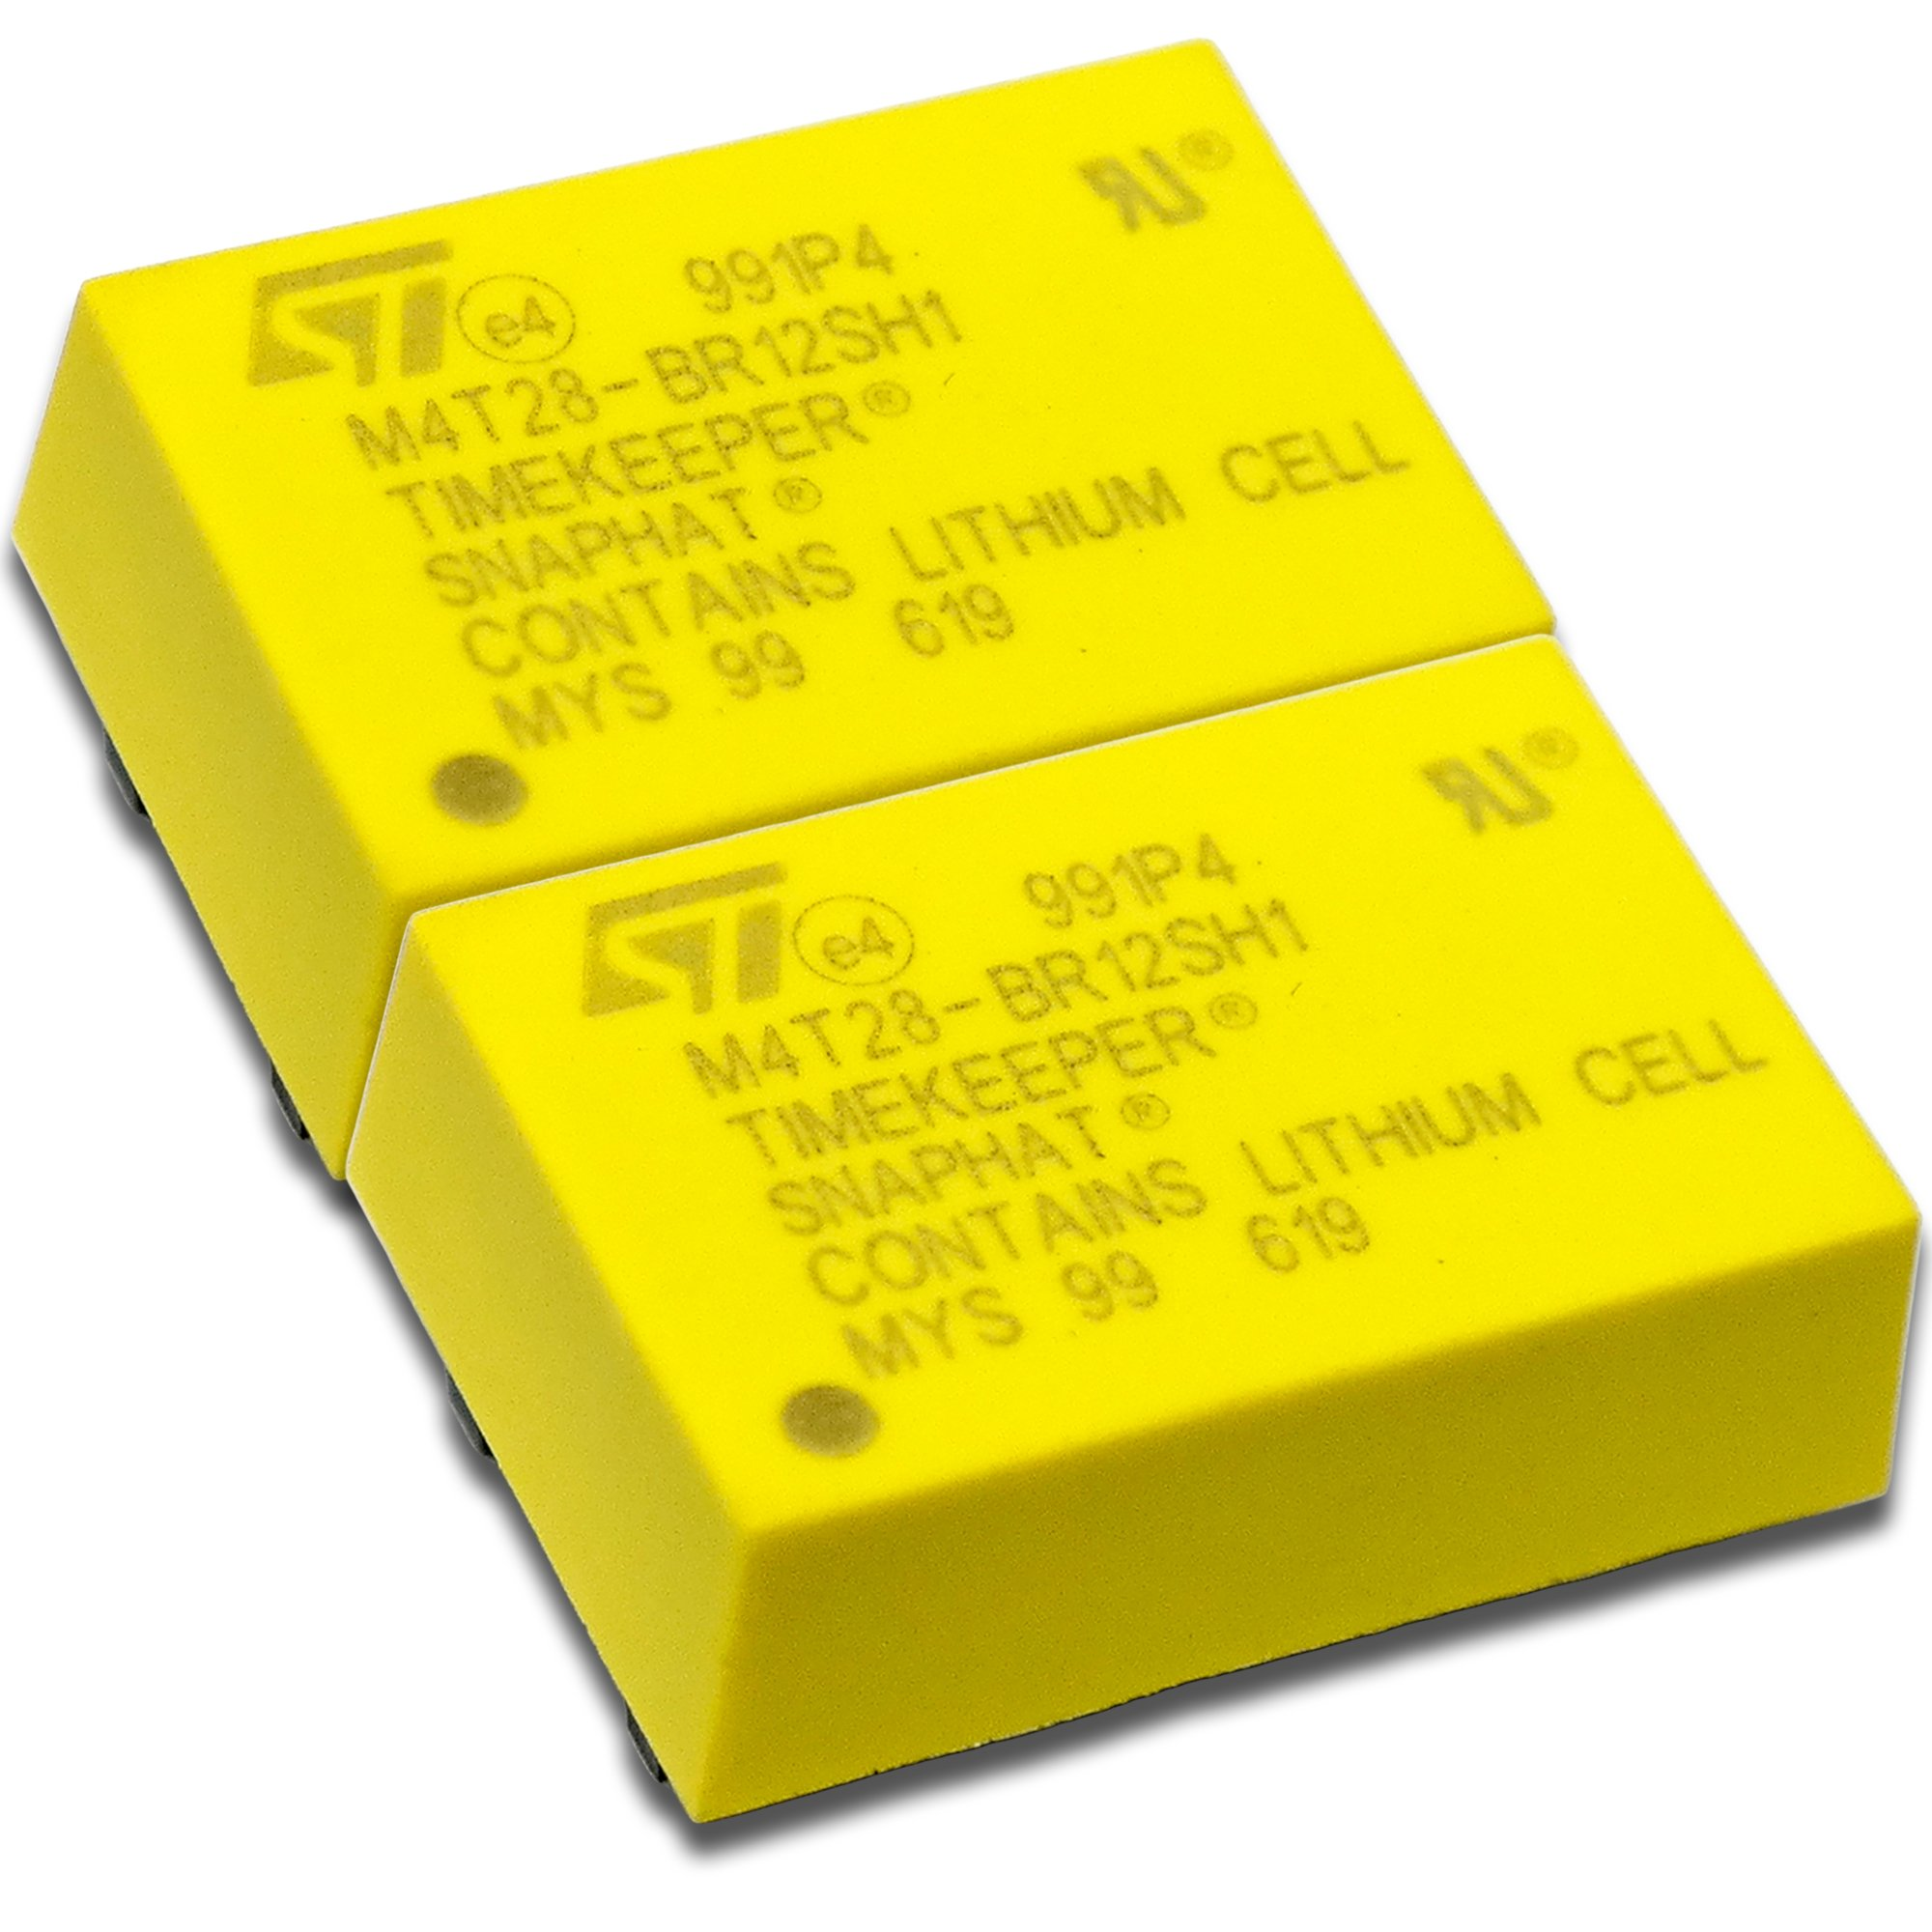 STMICROELECTRONICS ((2-PCS)) M4T28-BR12SH1 IC, BATTERY/CRYSTAL SNAPHAT, SNAPHAT-28,